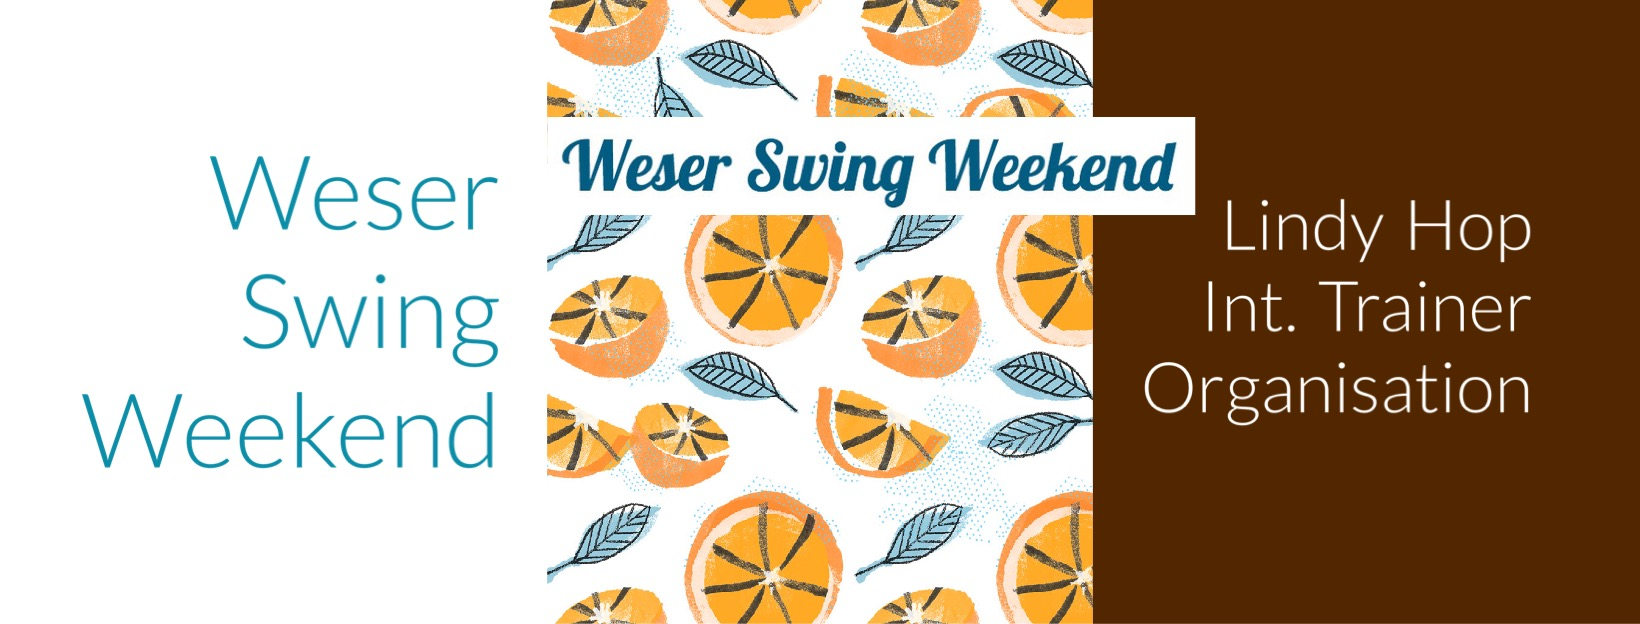 weser swing weekend